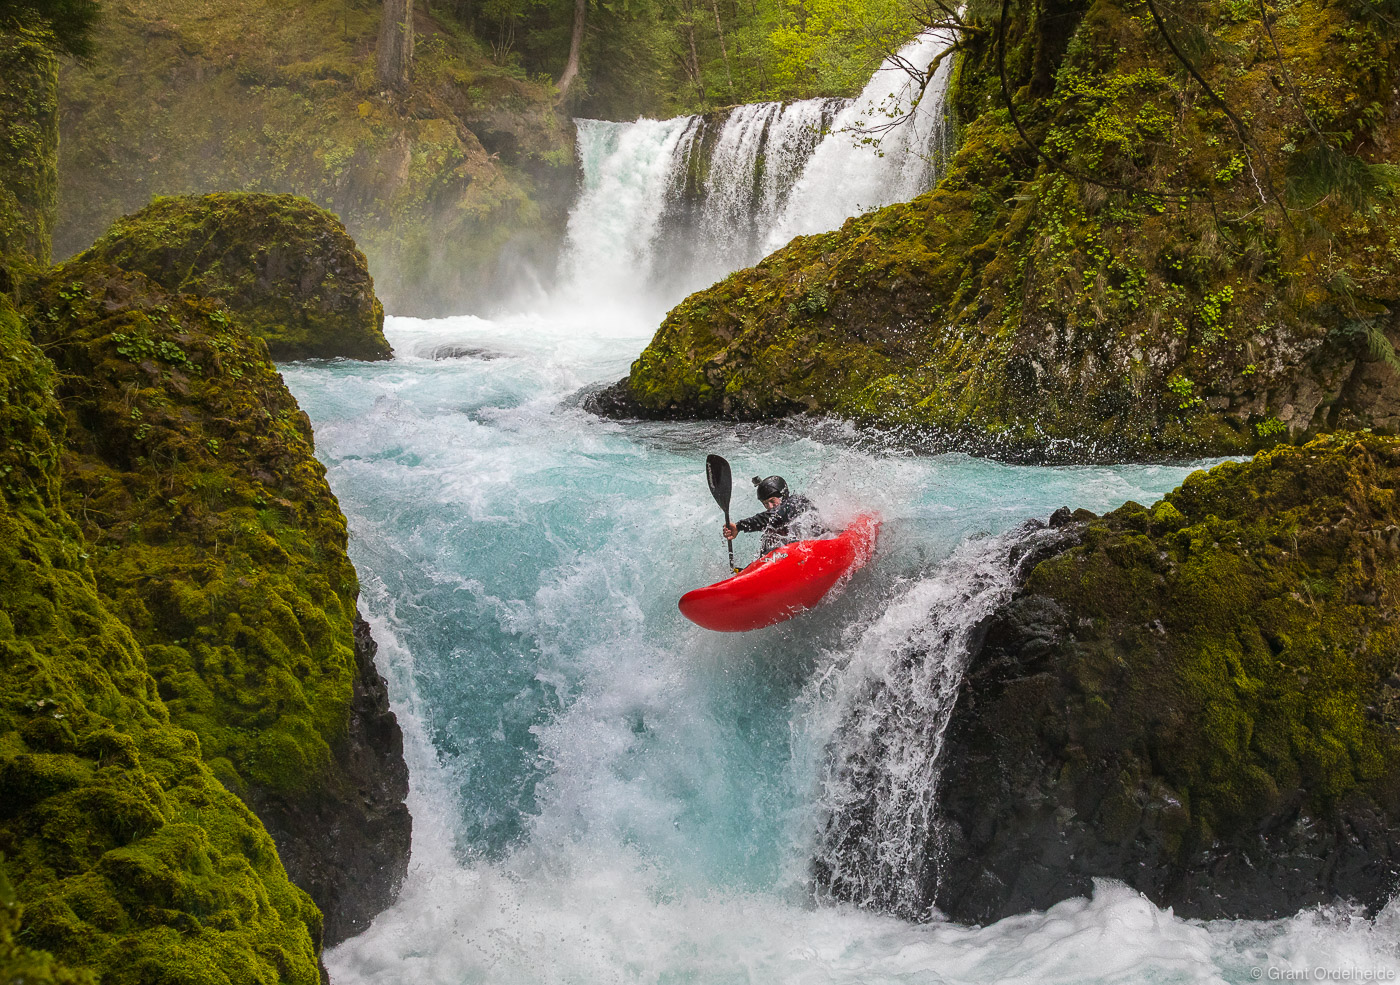 chaos, white, salmon, washington, kayaker, running, river, little, photo